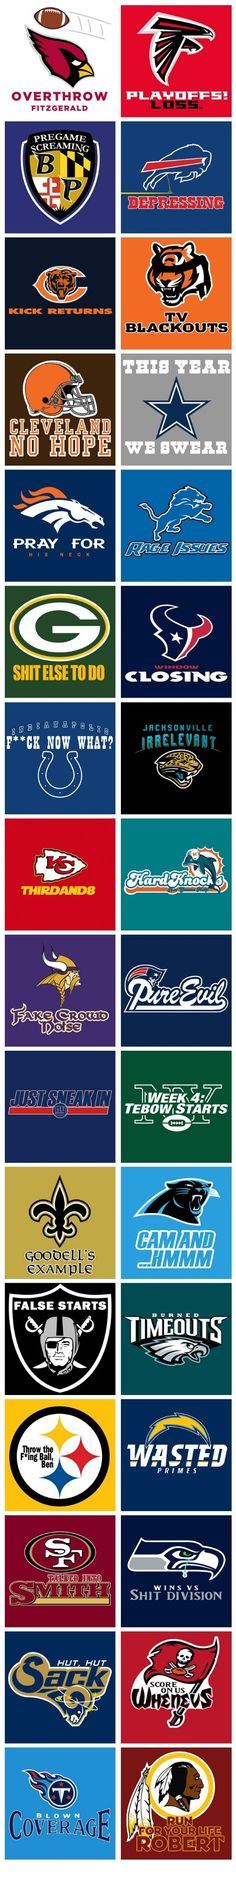 If NFL logos were honest @Priscilla Urias here's the one i was telling you about